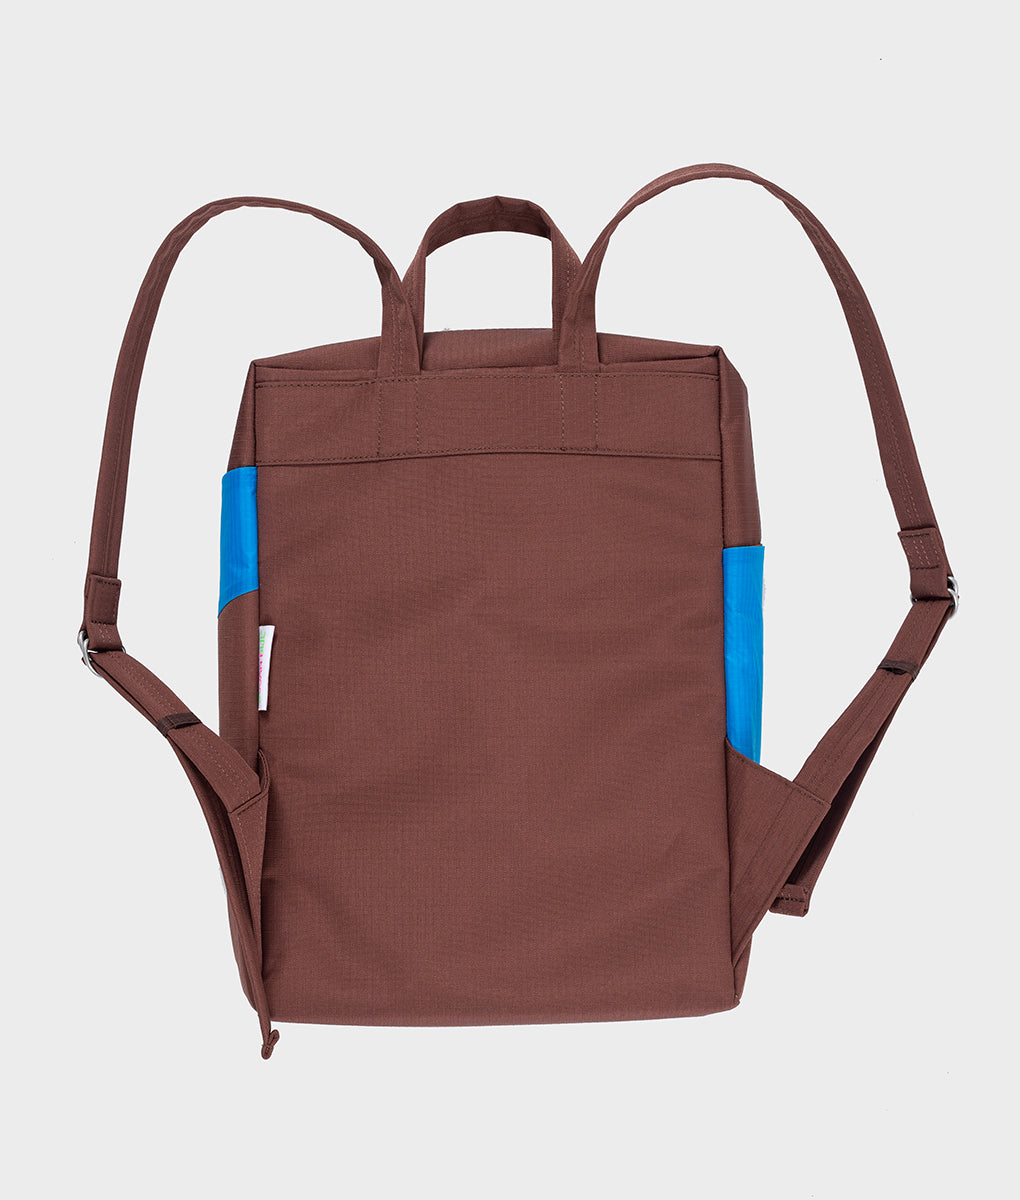 SusanBijl-Backpack-Brown-SkyBlue-02